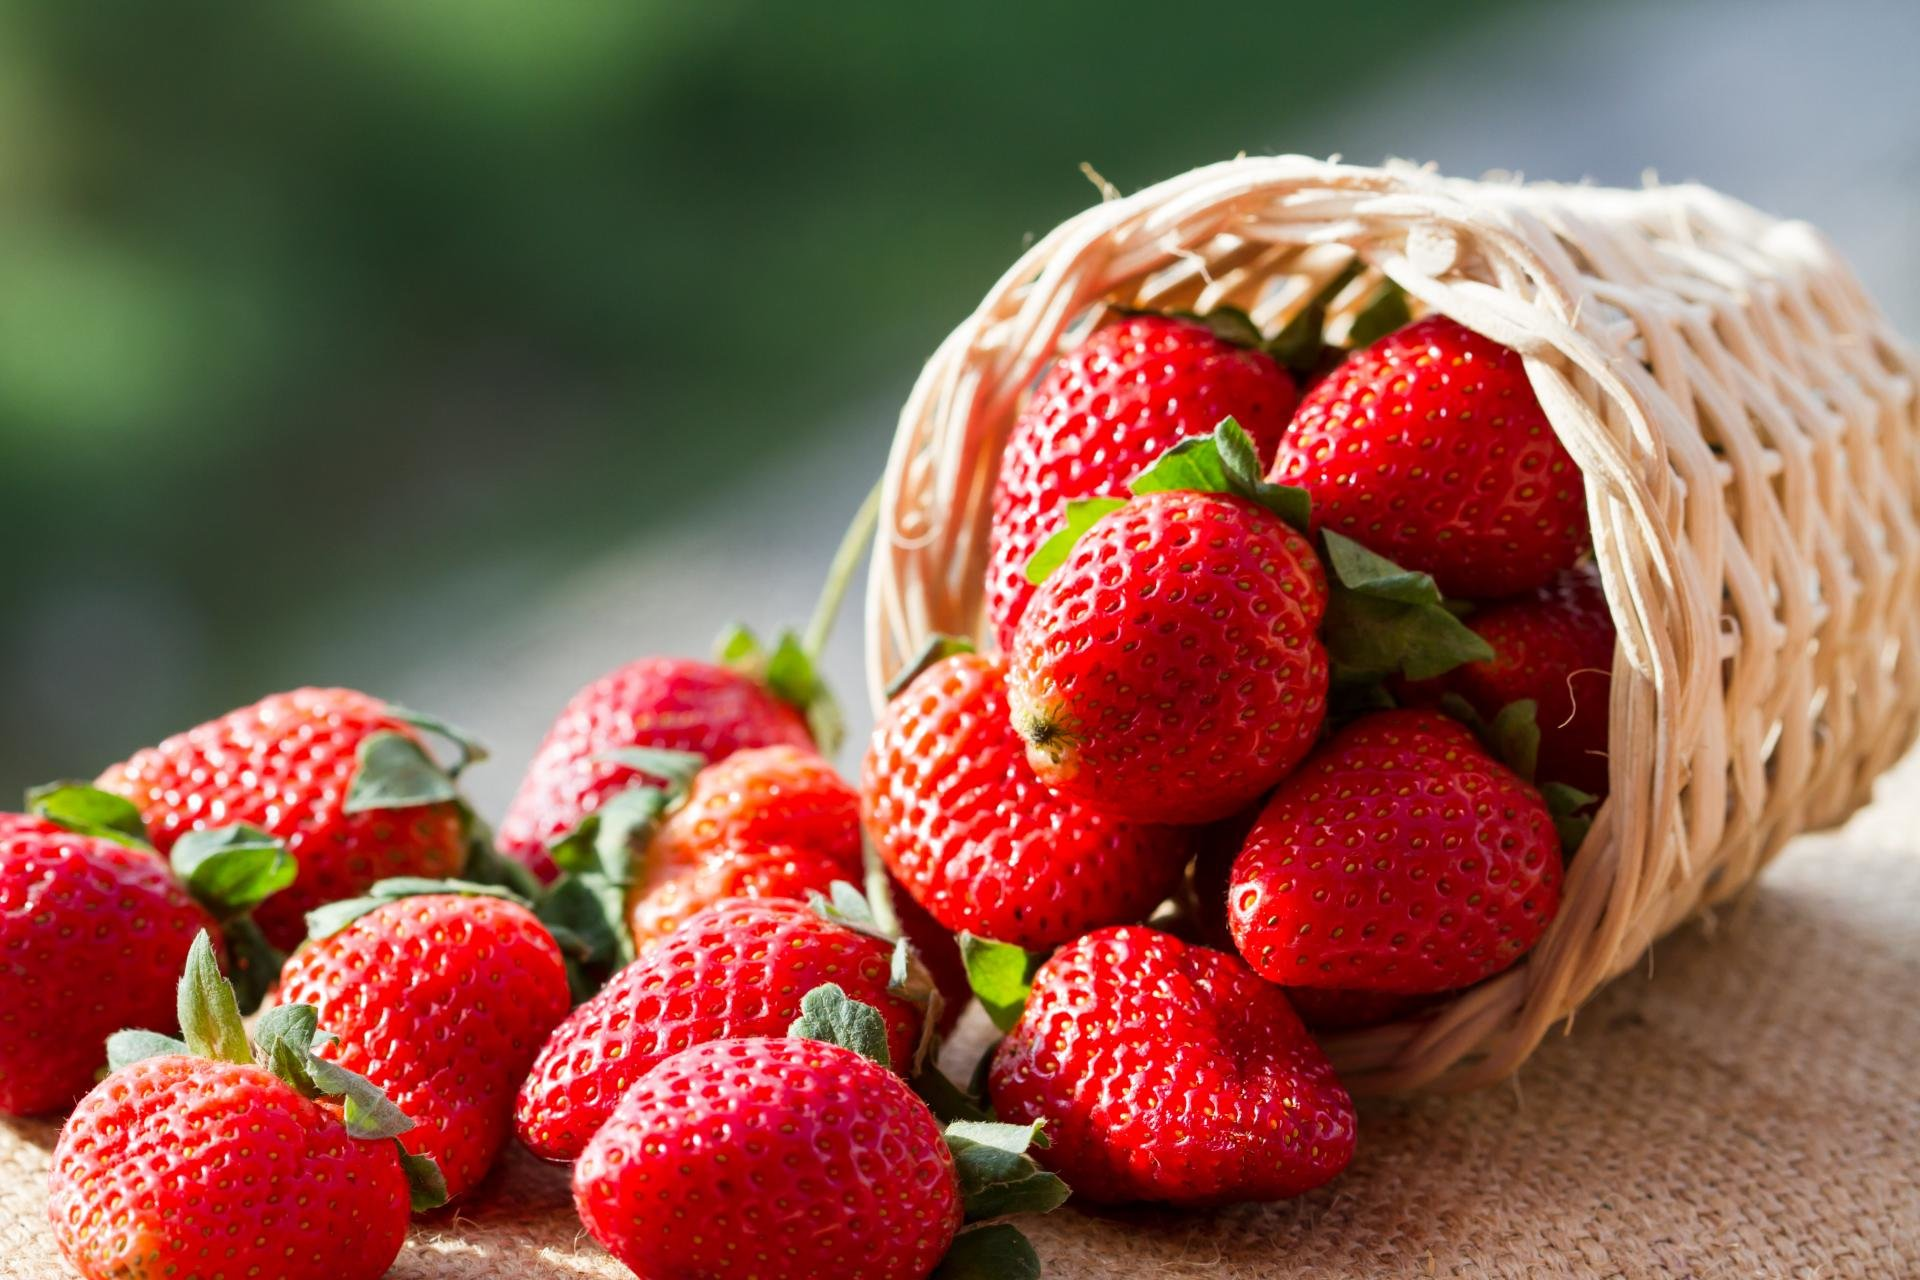 There is a museum dedicated to strawberries alone in Belgium.